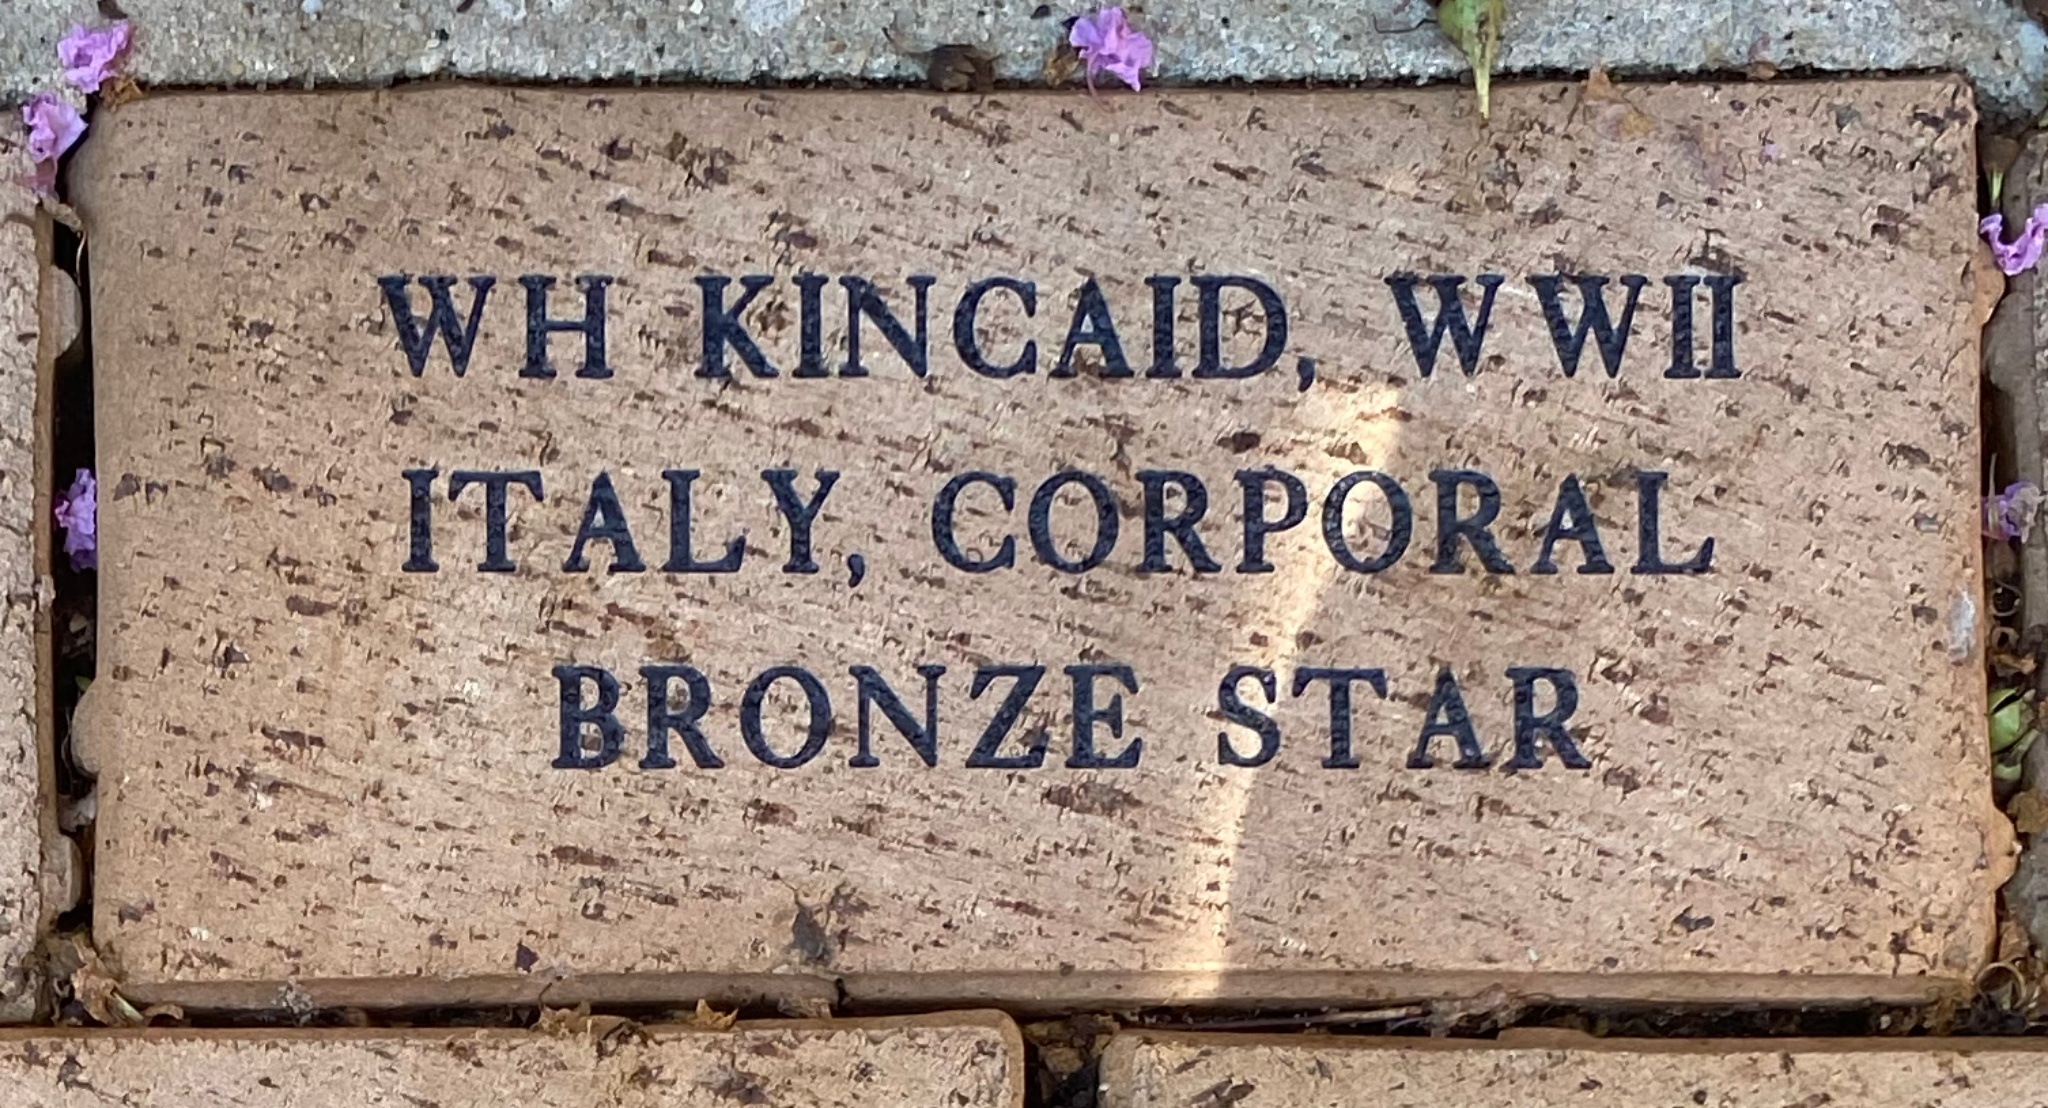 WH KINCAID, WWII ITALY, CORPORAL BRONZE STAR